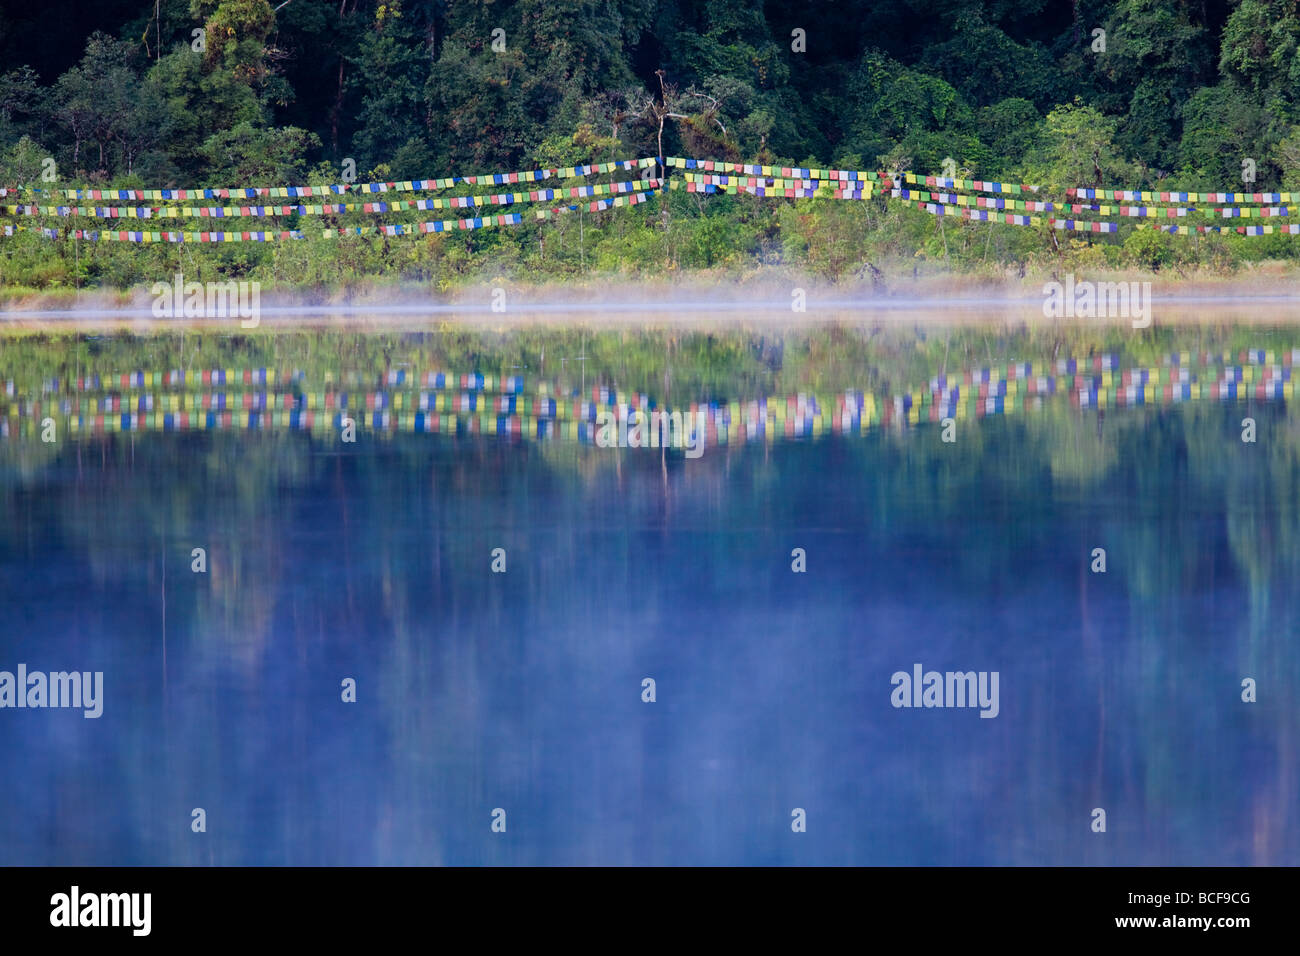 India, Sikkim, Khecheopalri Lake,  - Holy lake highly revered by SKikkimese Buddhists - Stock Image